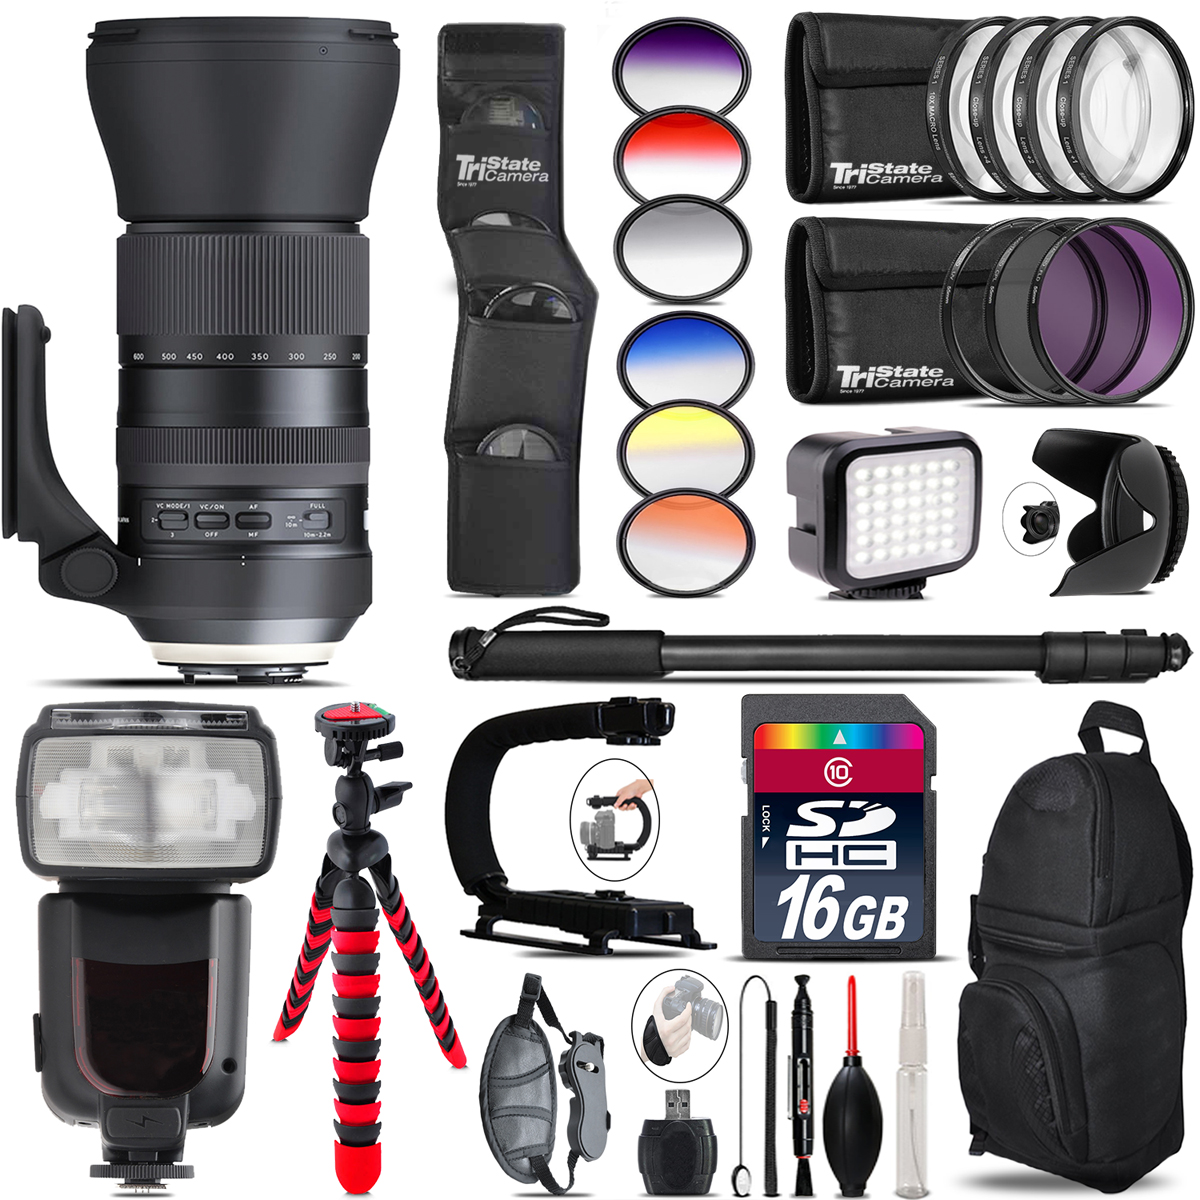 Tamron 150-600mm G2 for Canon + Pro Flash + LED Light - 16GB Accessory Bundle *FREE SHIPPING*